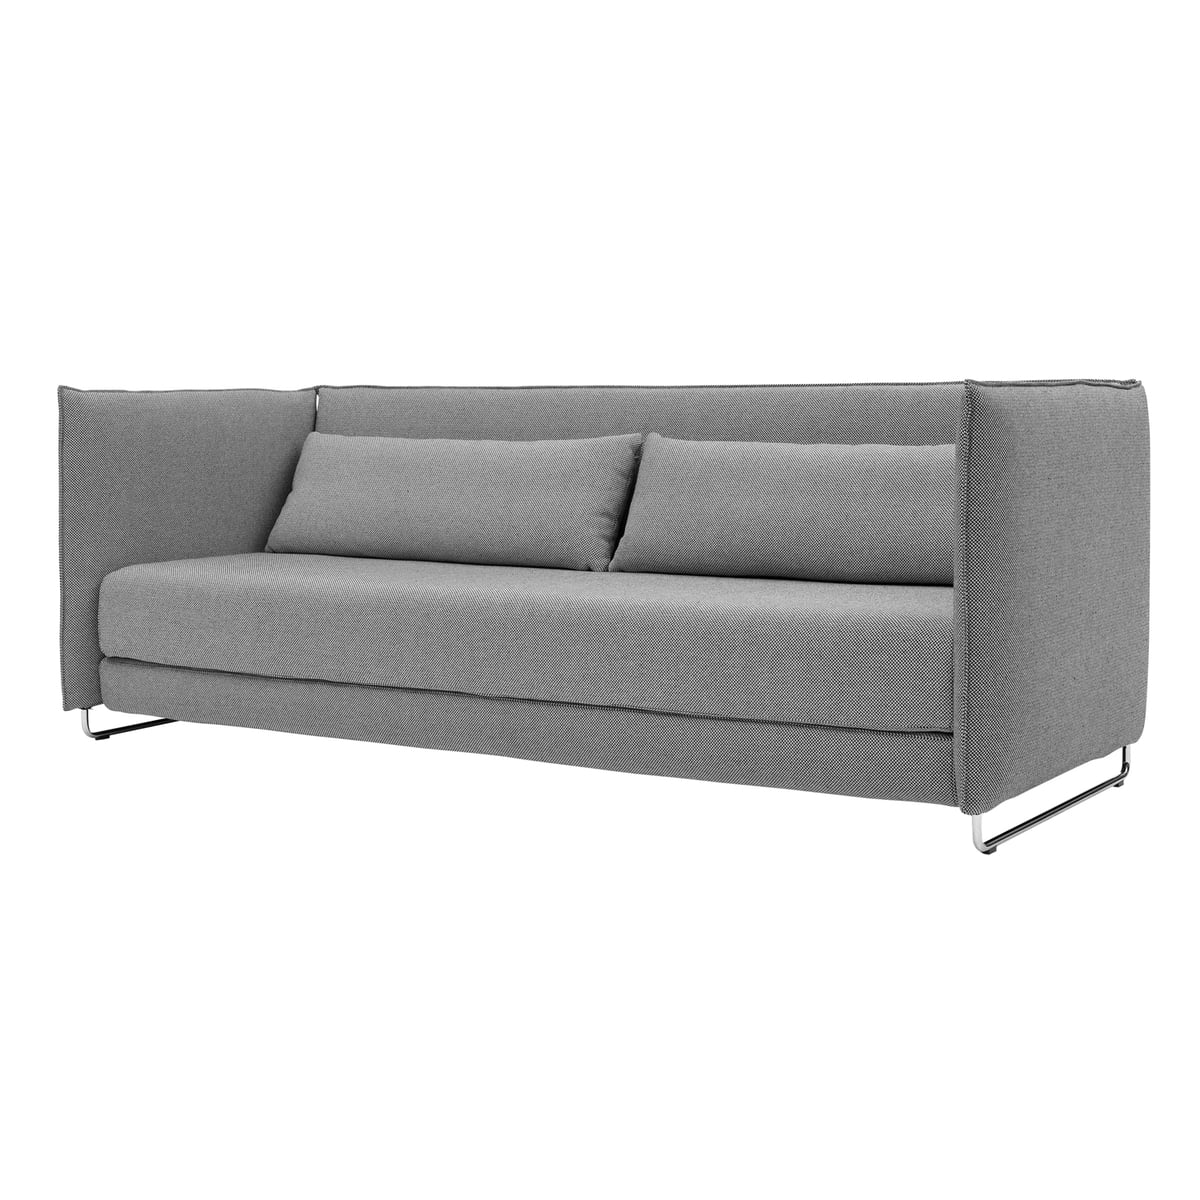 the metro sofa bed by softline in our design shop